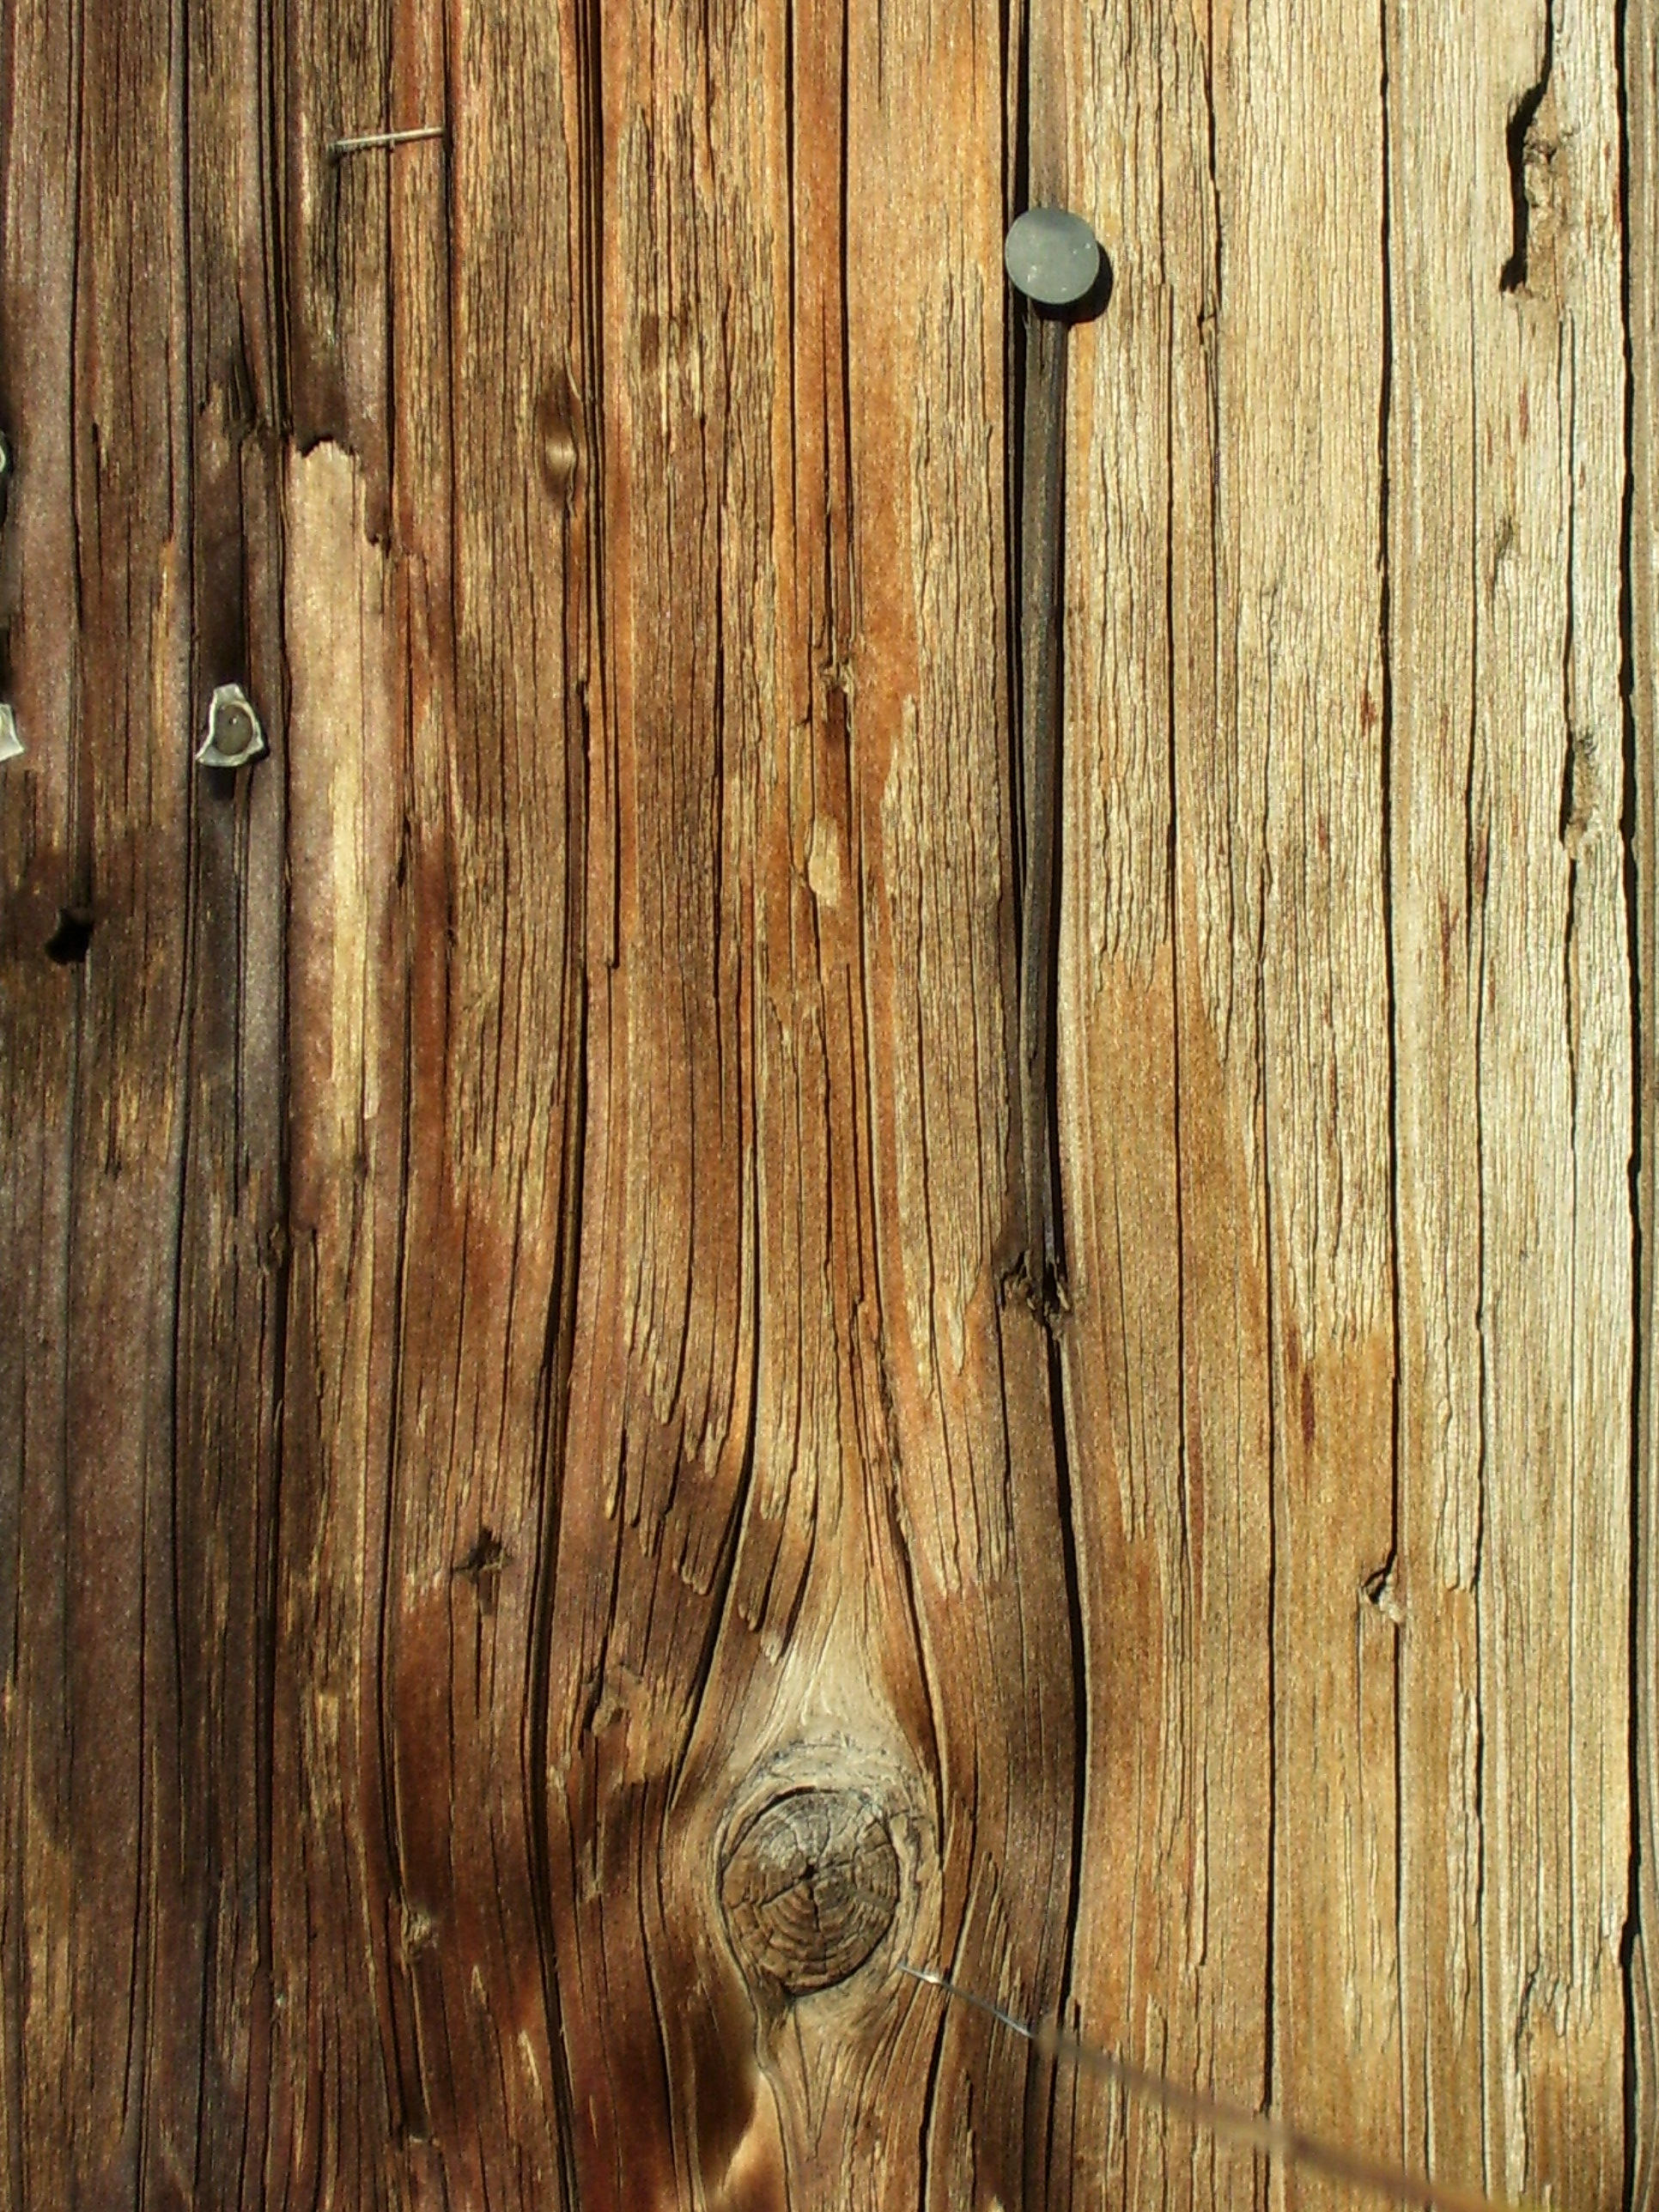 Wood Wood Autumn Winter 2014 2015 Latest Fashion Trends 2019: 55 FREE Awesome High Quality Wood Textures